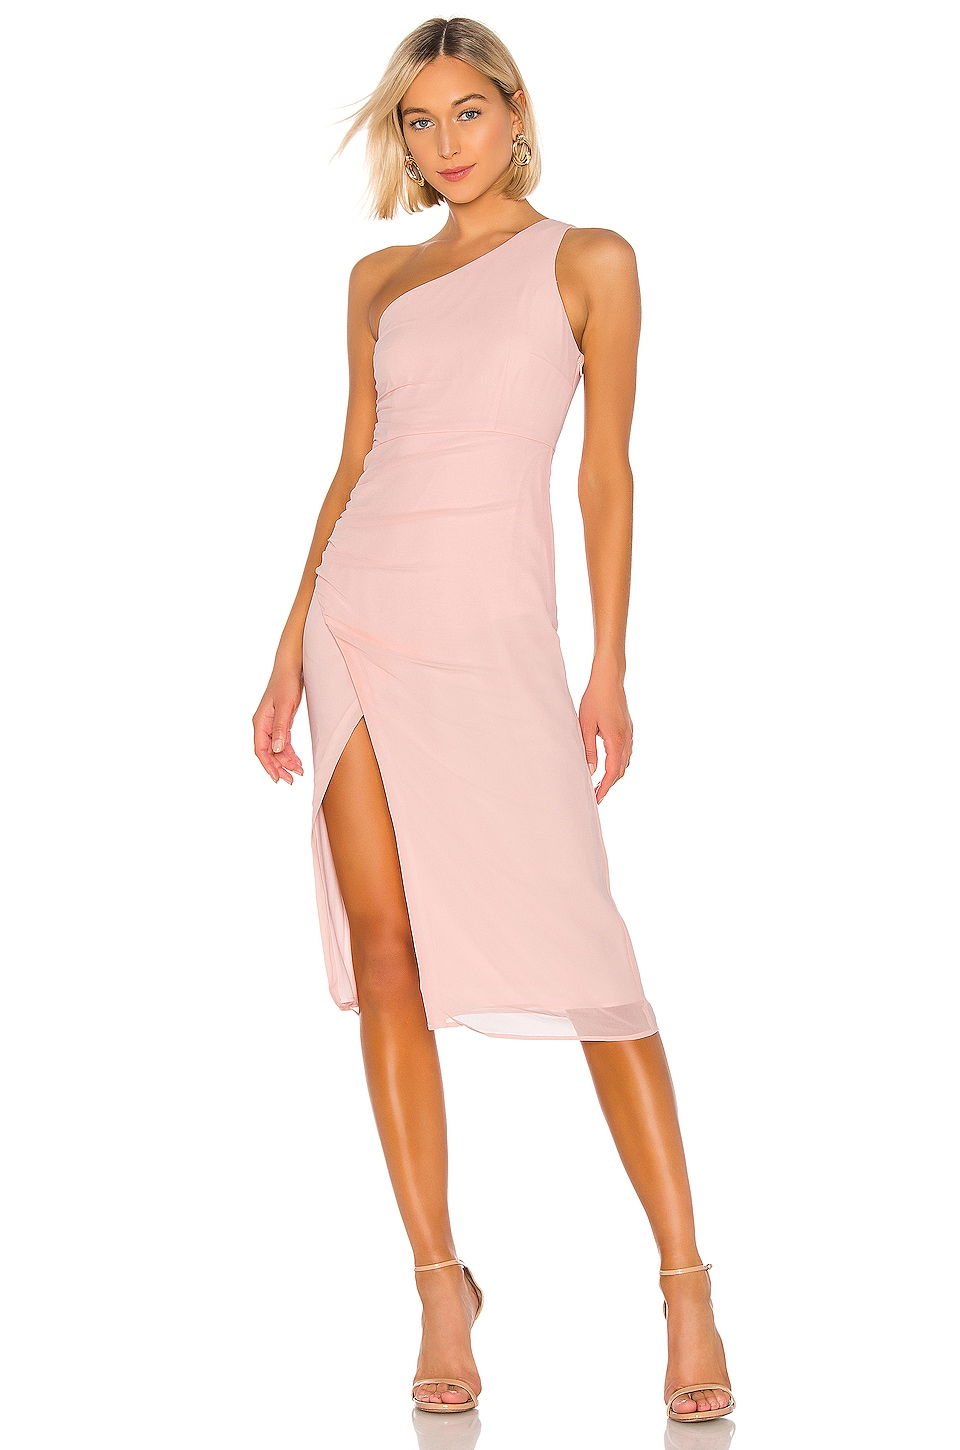 Romina Midi Dress             NBD                                                                                                                                         Sale price:                                                                       CA$ 151.58                                                                                                  Previous price:                                                                       CA$ 303.16 6